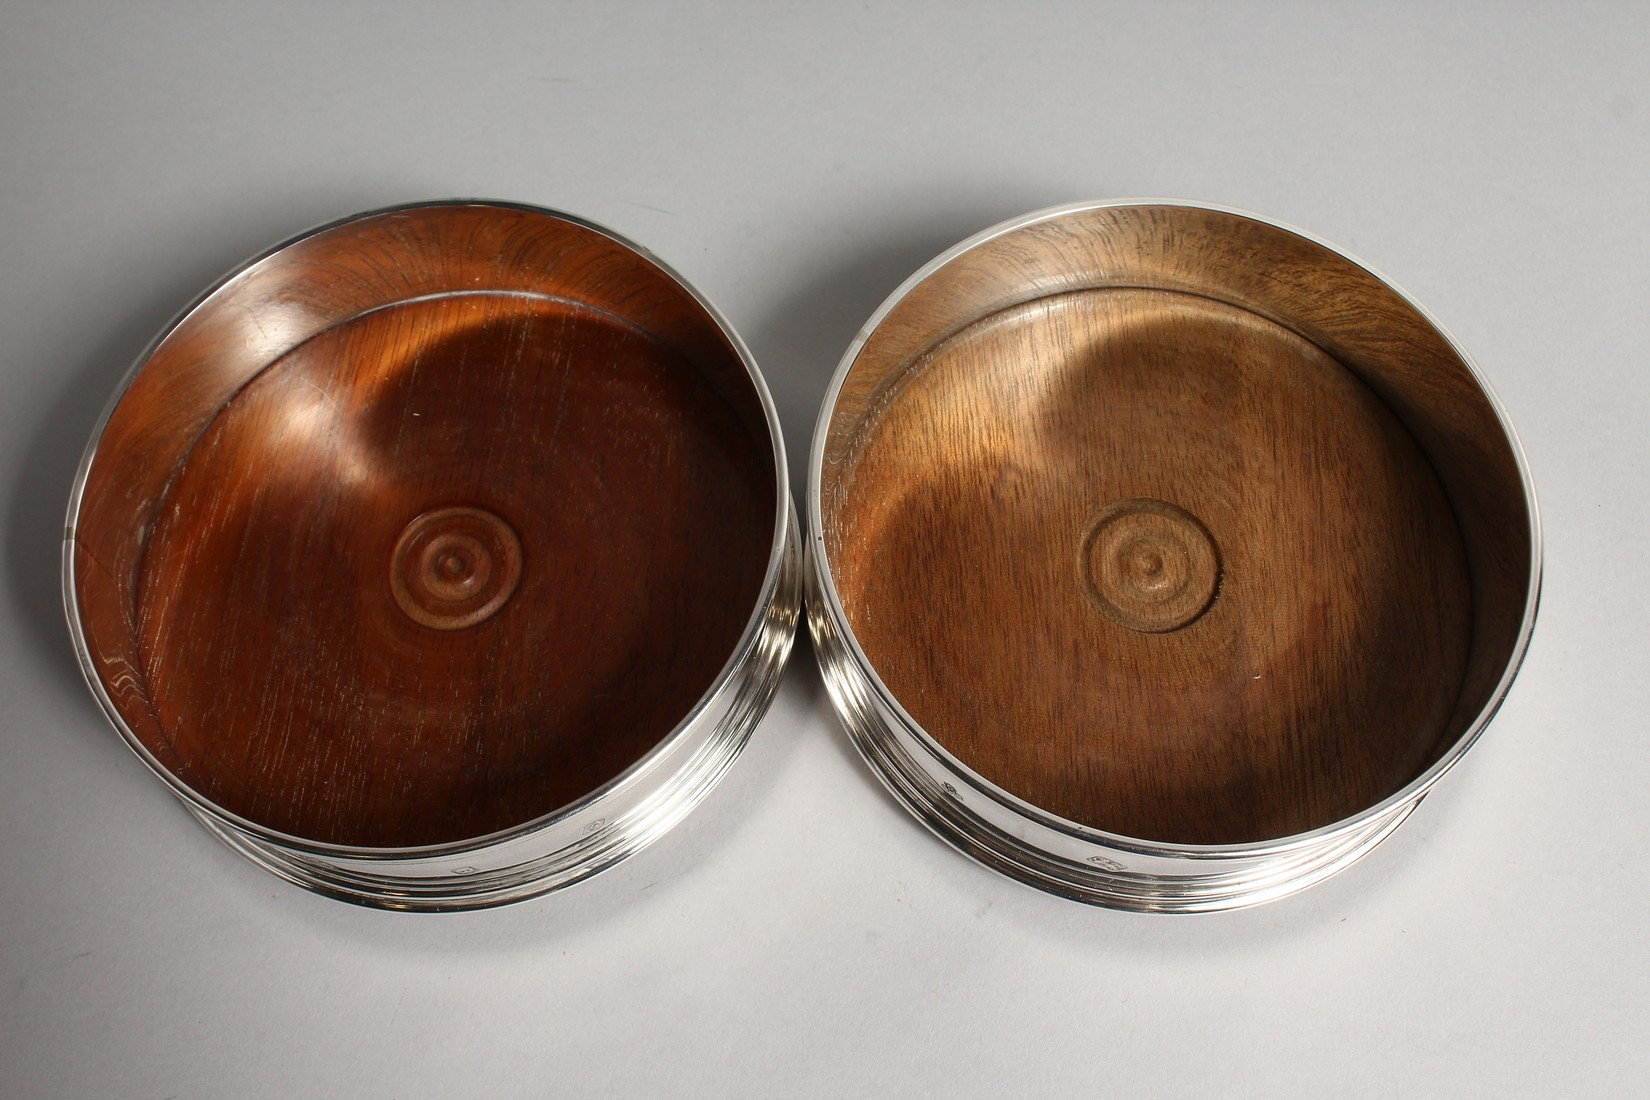 A PAIR OF MODERN PLAIN SILVER WINE WINE COASTERS wit turned wood bases 4.75diameter London 2003 - Image 5 of 6